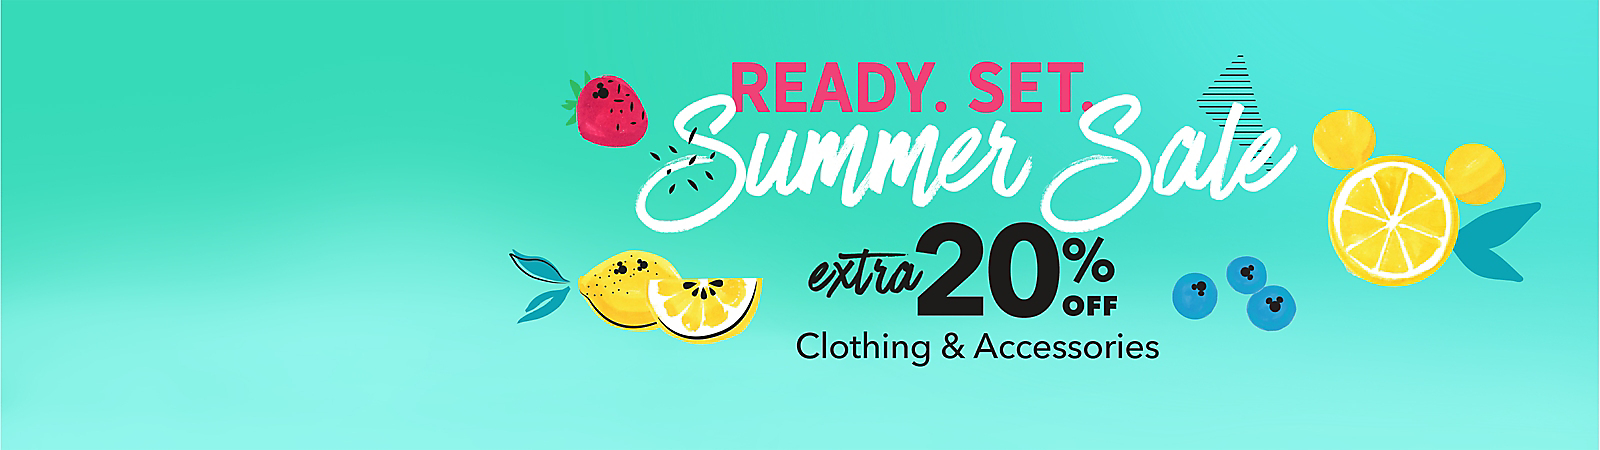 Ready. Set. Summer Sale